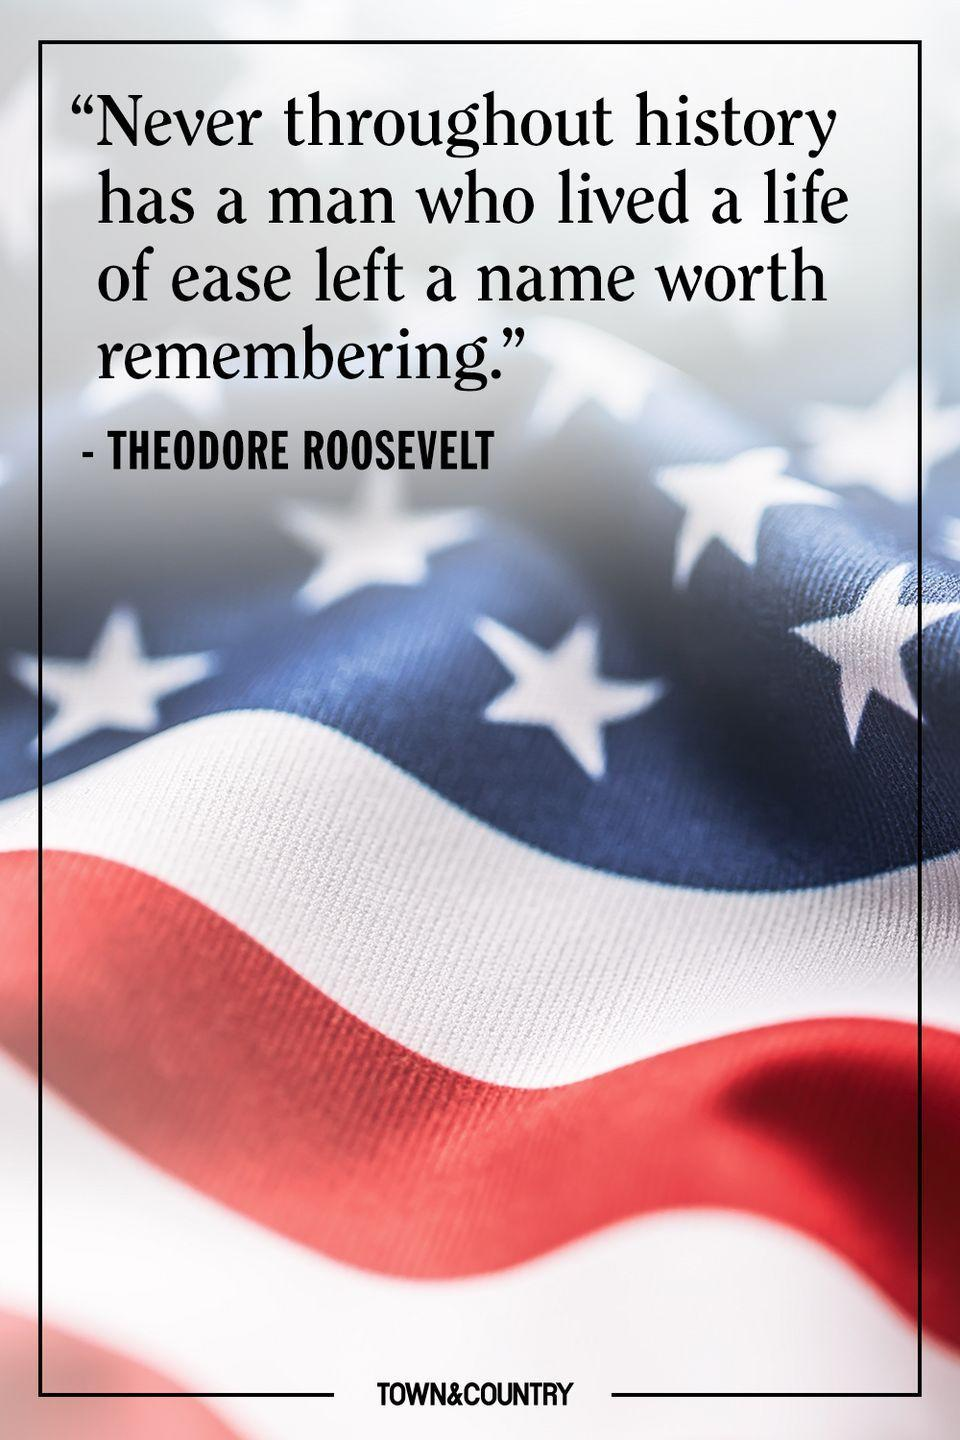 "<p>""Never throughout history has a man who lived a life of ease left a name worth remembering.""</p><p>– Theodore Roosevelt</p>"